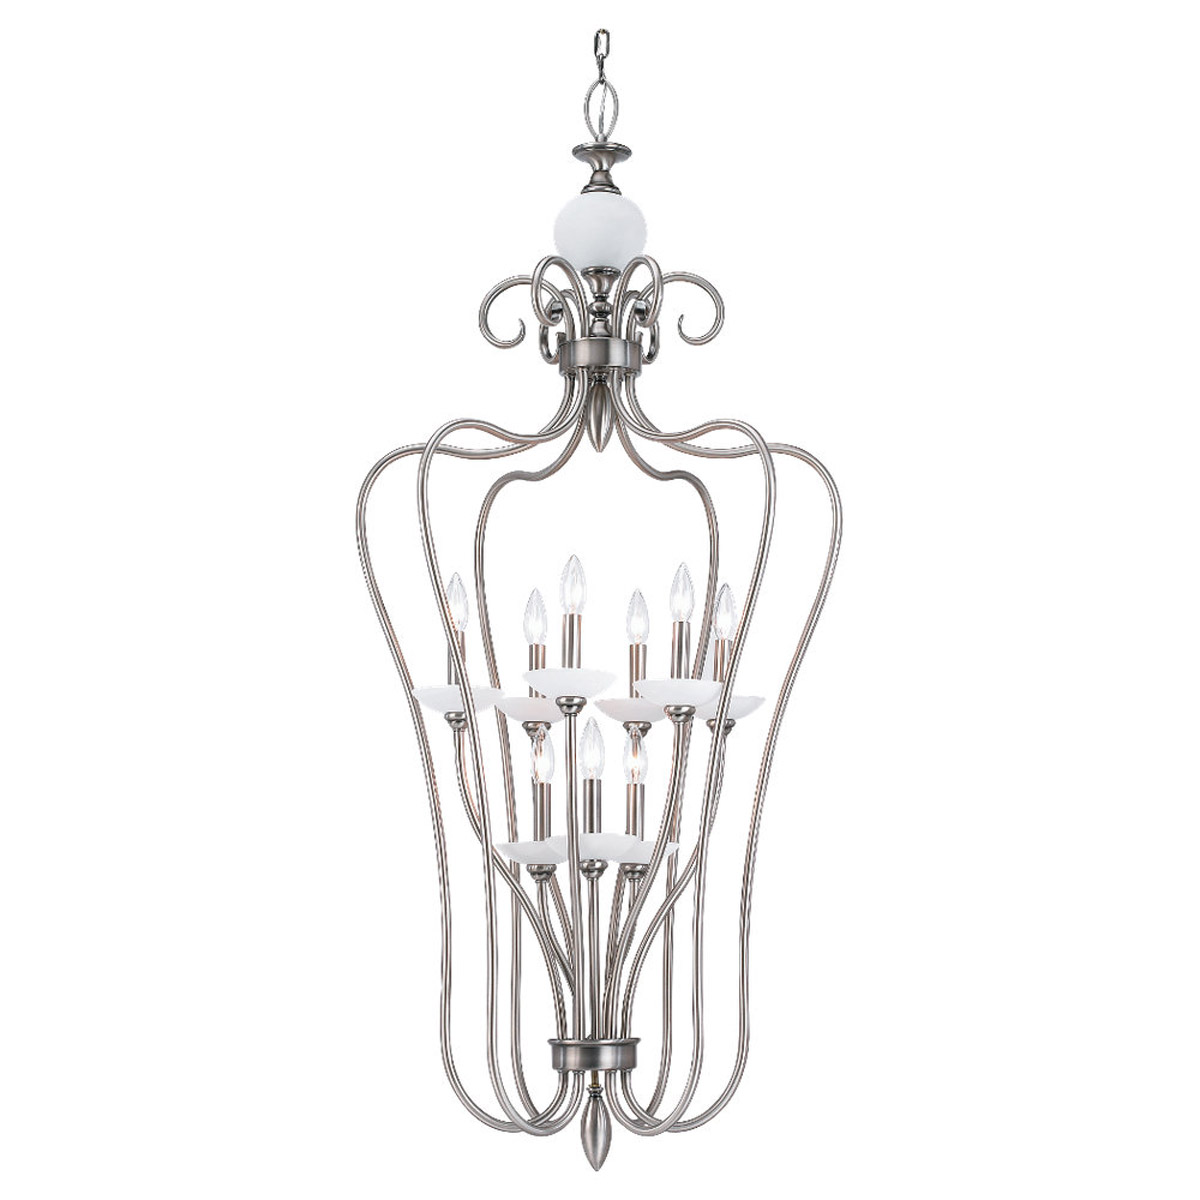 Sea Gull Lighting Montclaire 9 Light Foyer Pendant in Antique Brushed Nickel 51107-965 photo